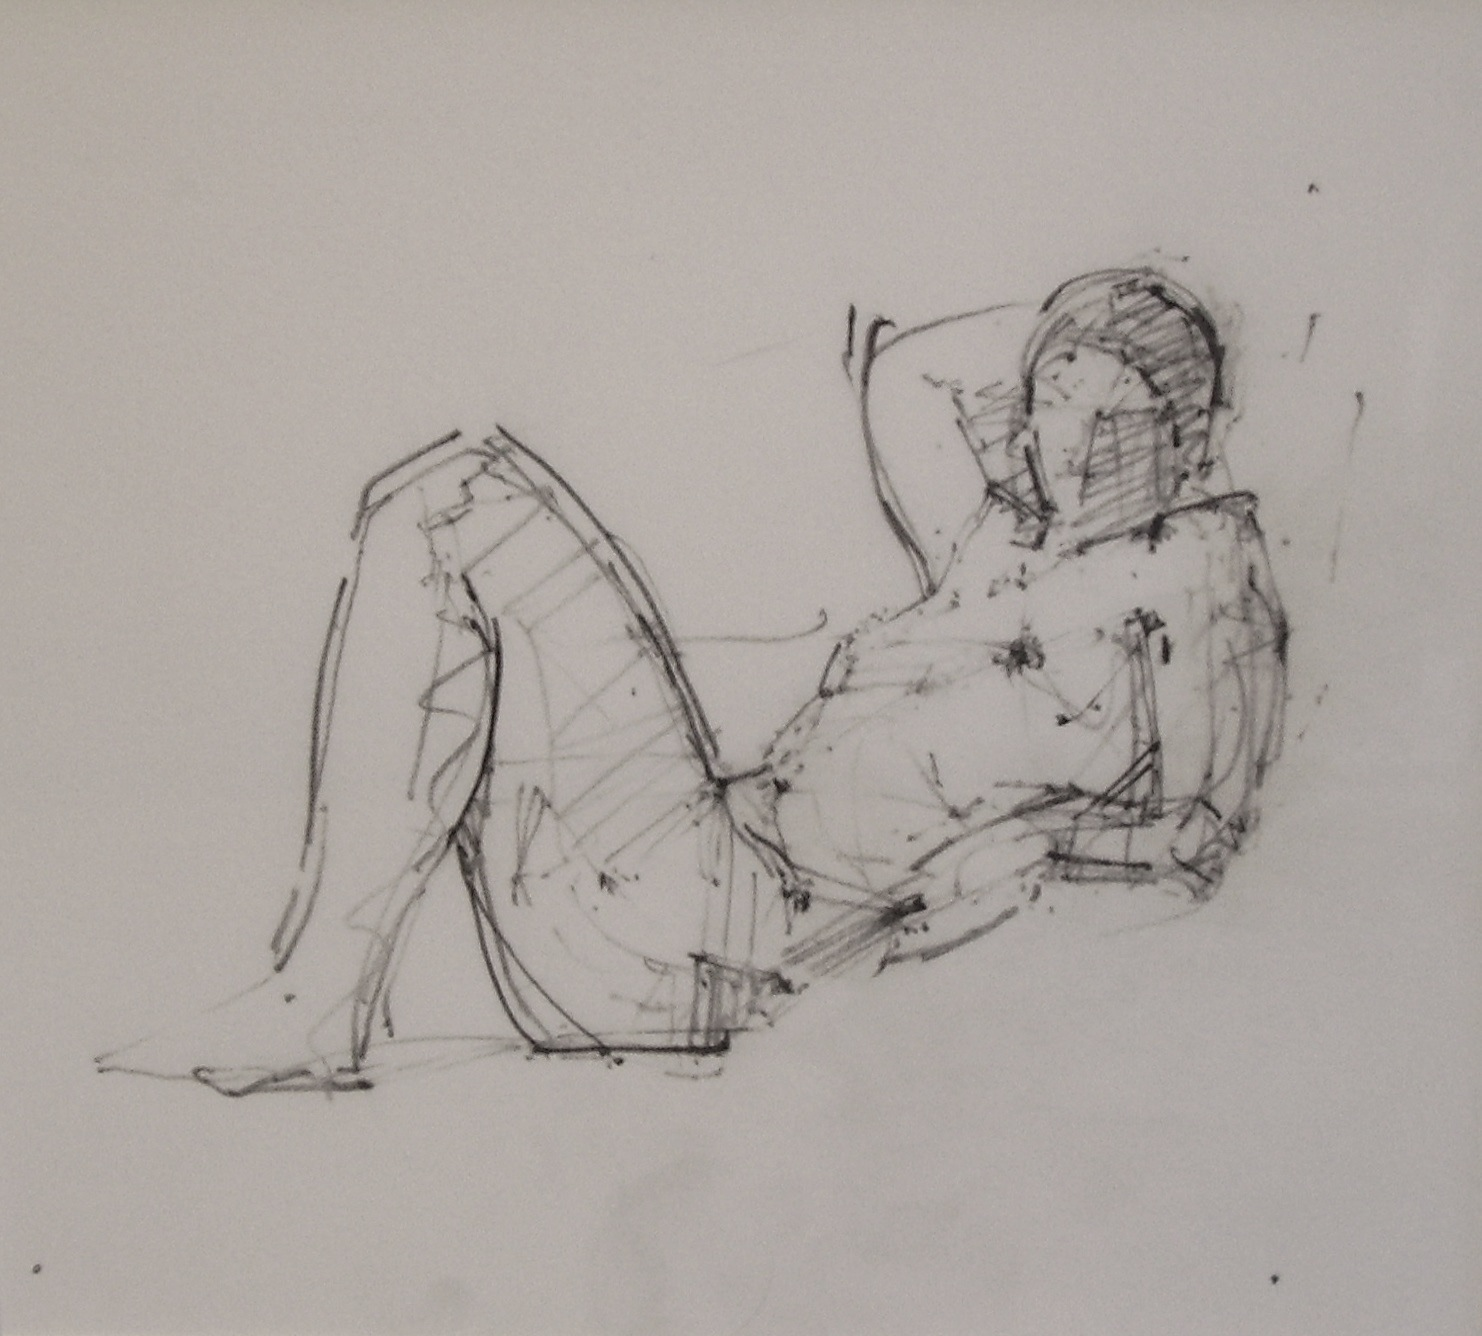 Study for After Veronese, 2004-05